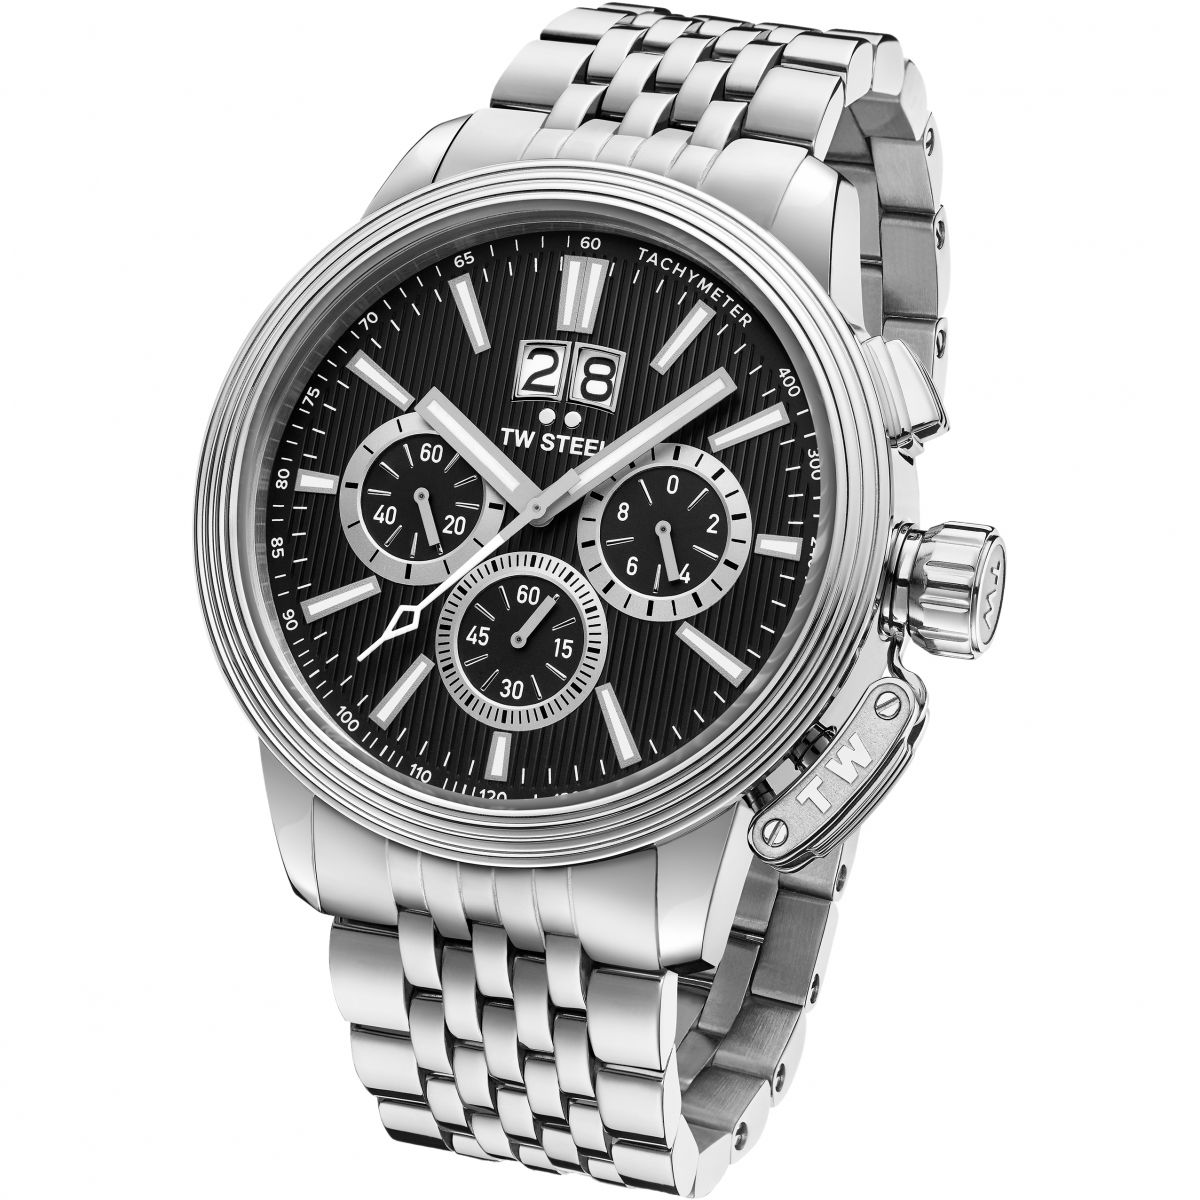 watches steel tw watch chronograph